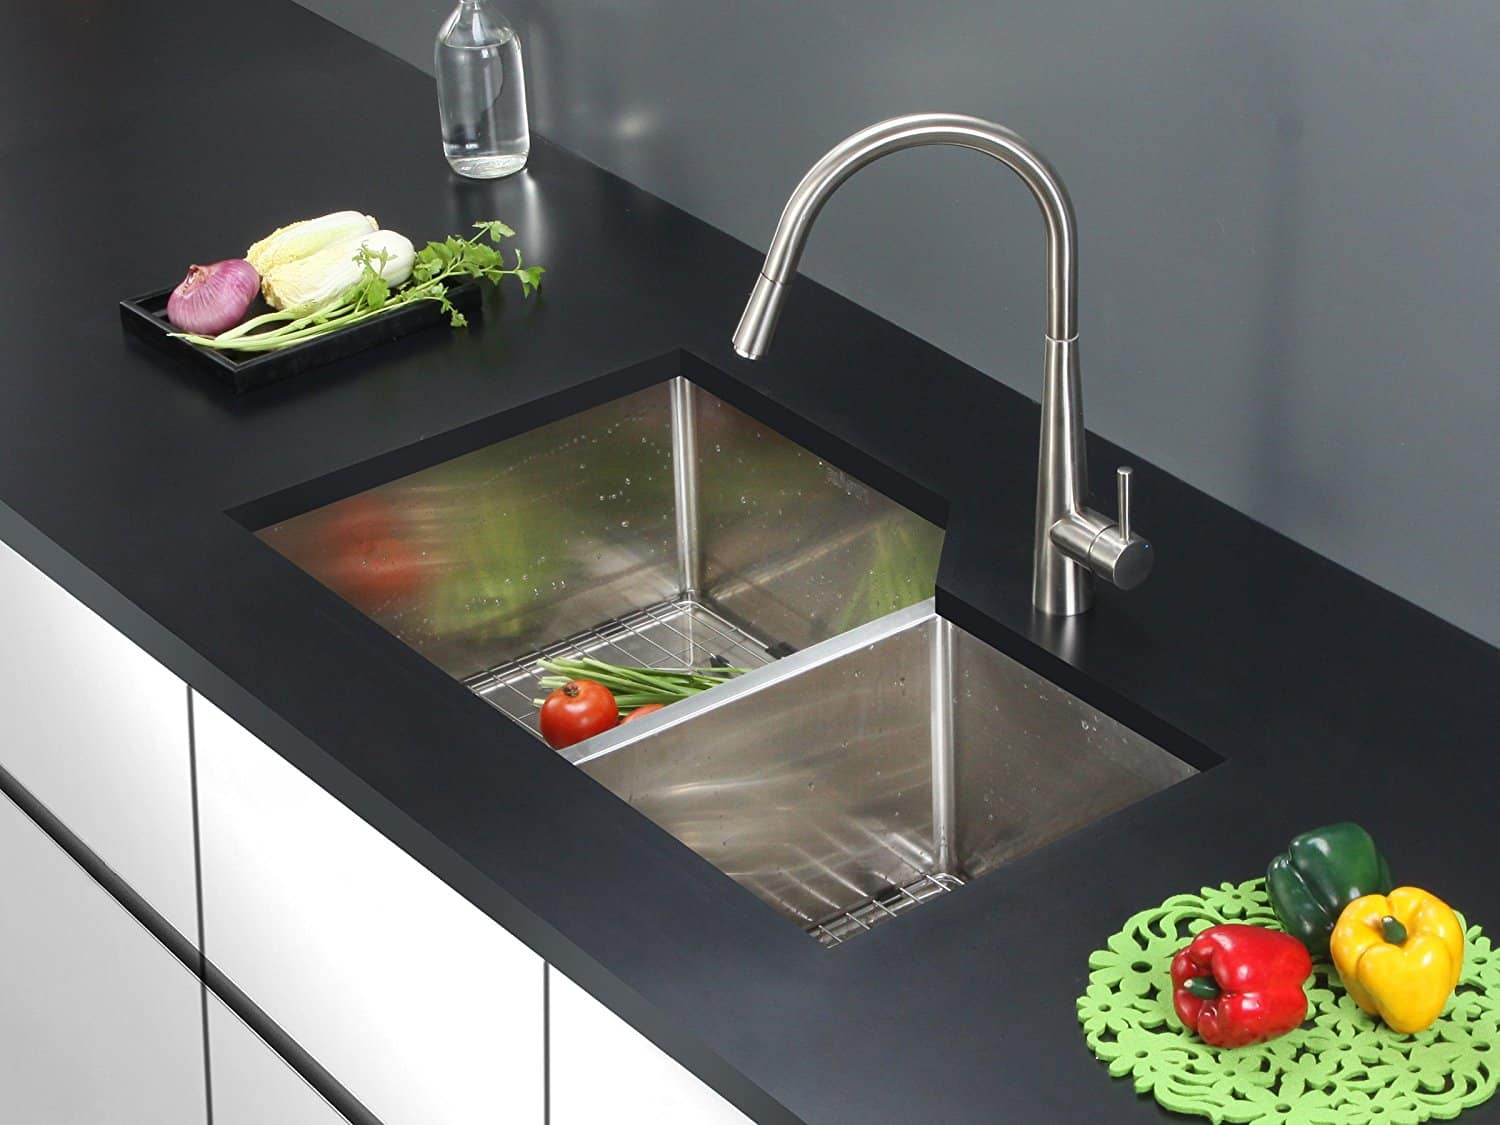 Top 10 Best Double Bowl Stainless Steel Kitchen Sink Reviews for 2018